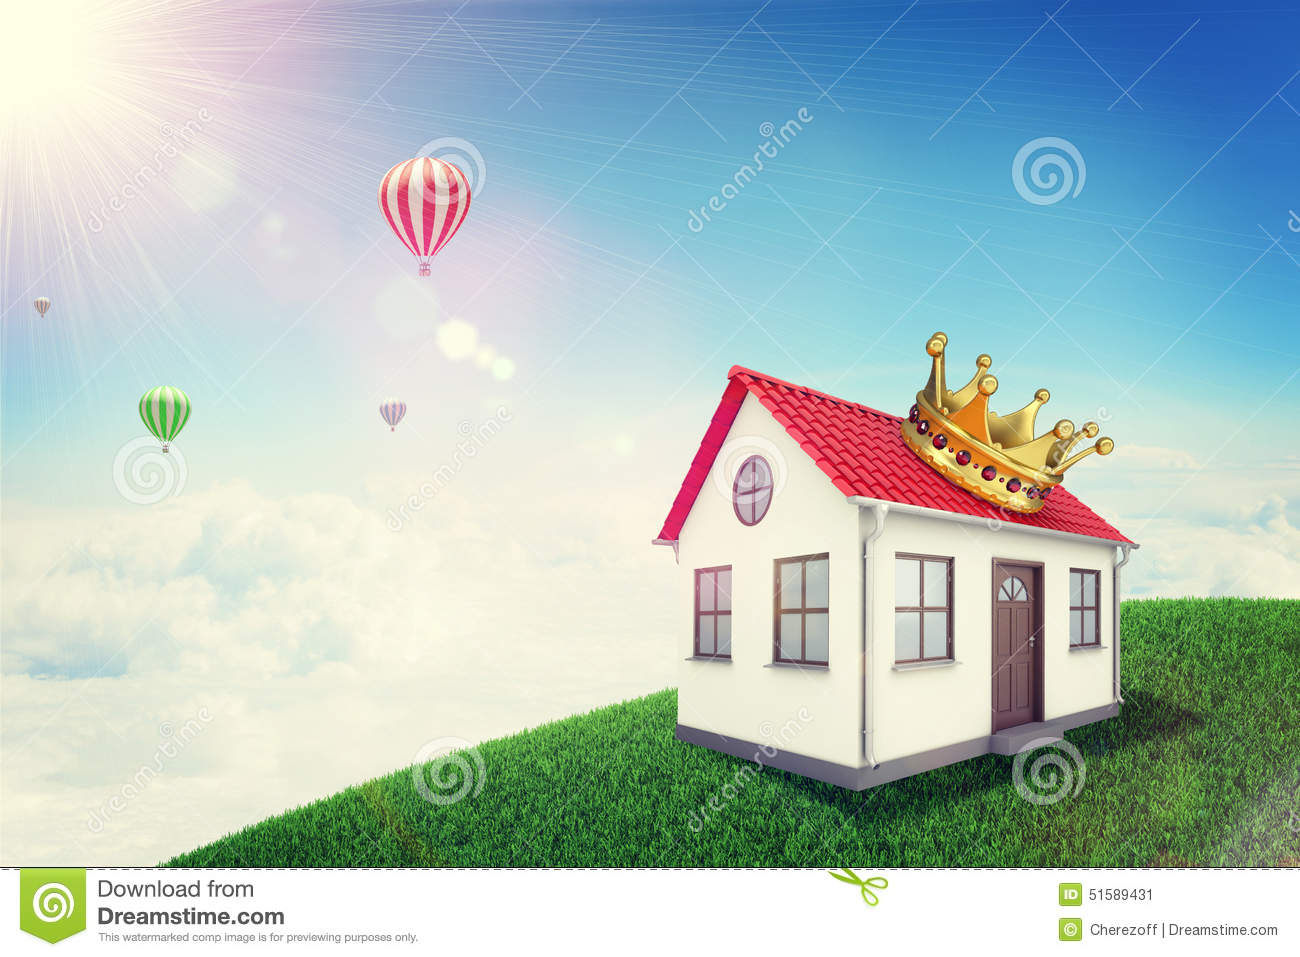 balloon crown sky stock photos royalty free stock images. Black Bedroom Furniture Sets. Home Design Ideas